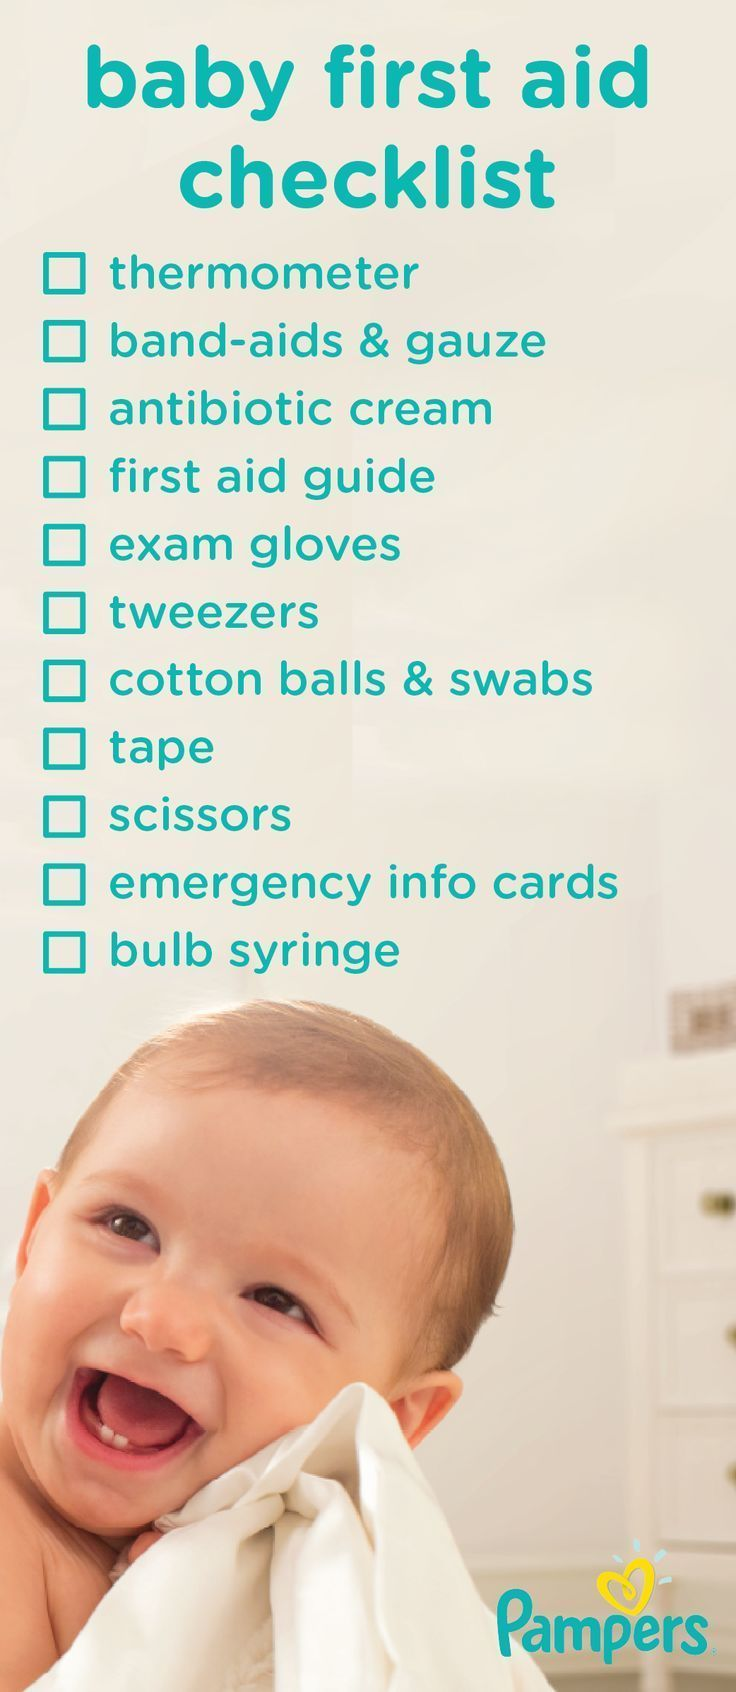 Baby first aid kit essentials nurses know presented by